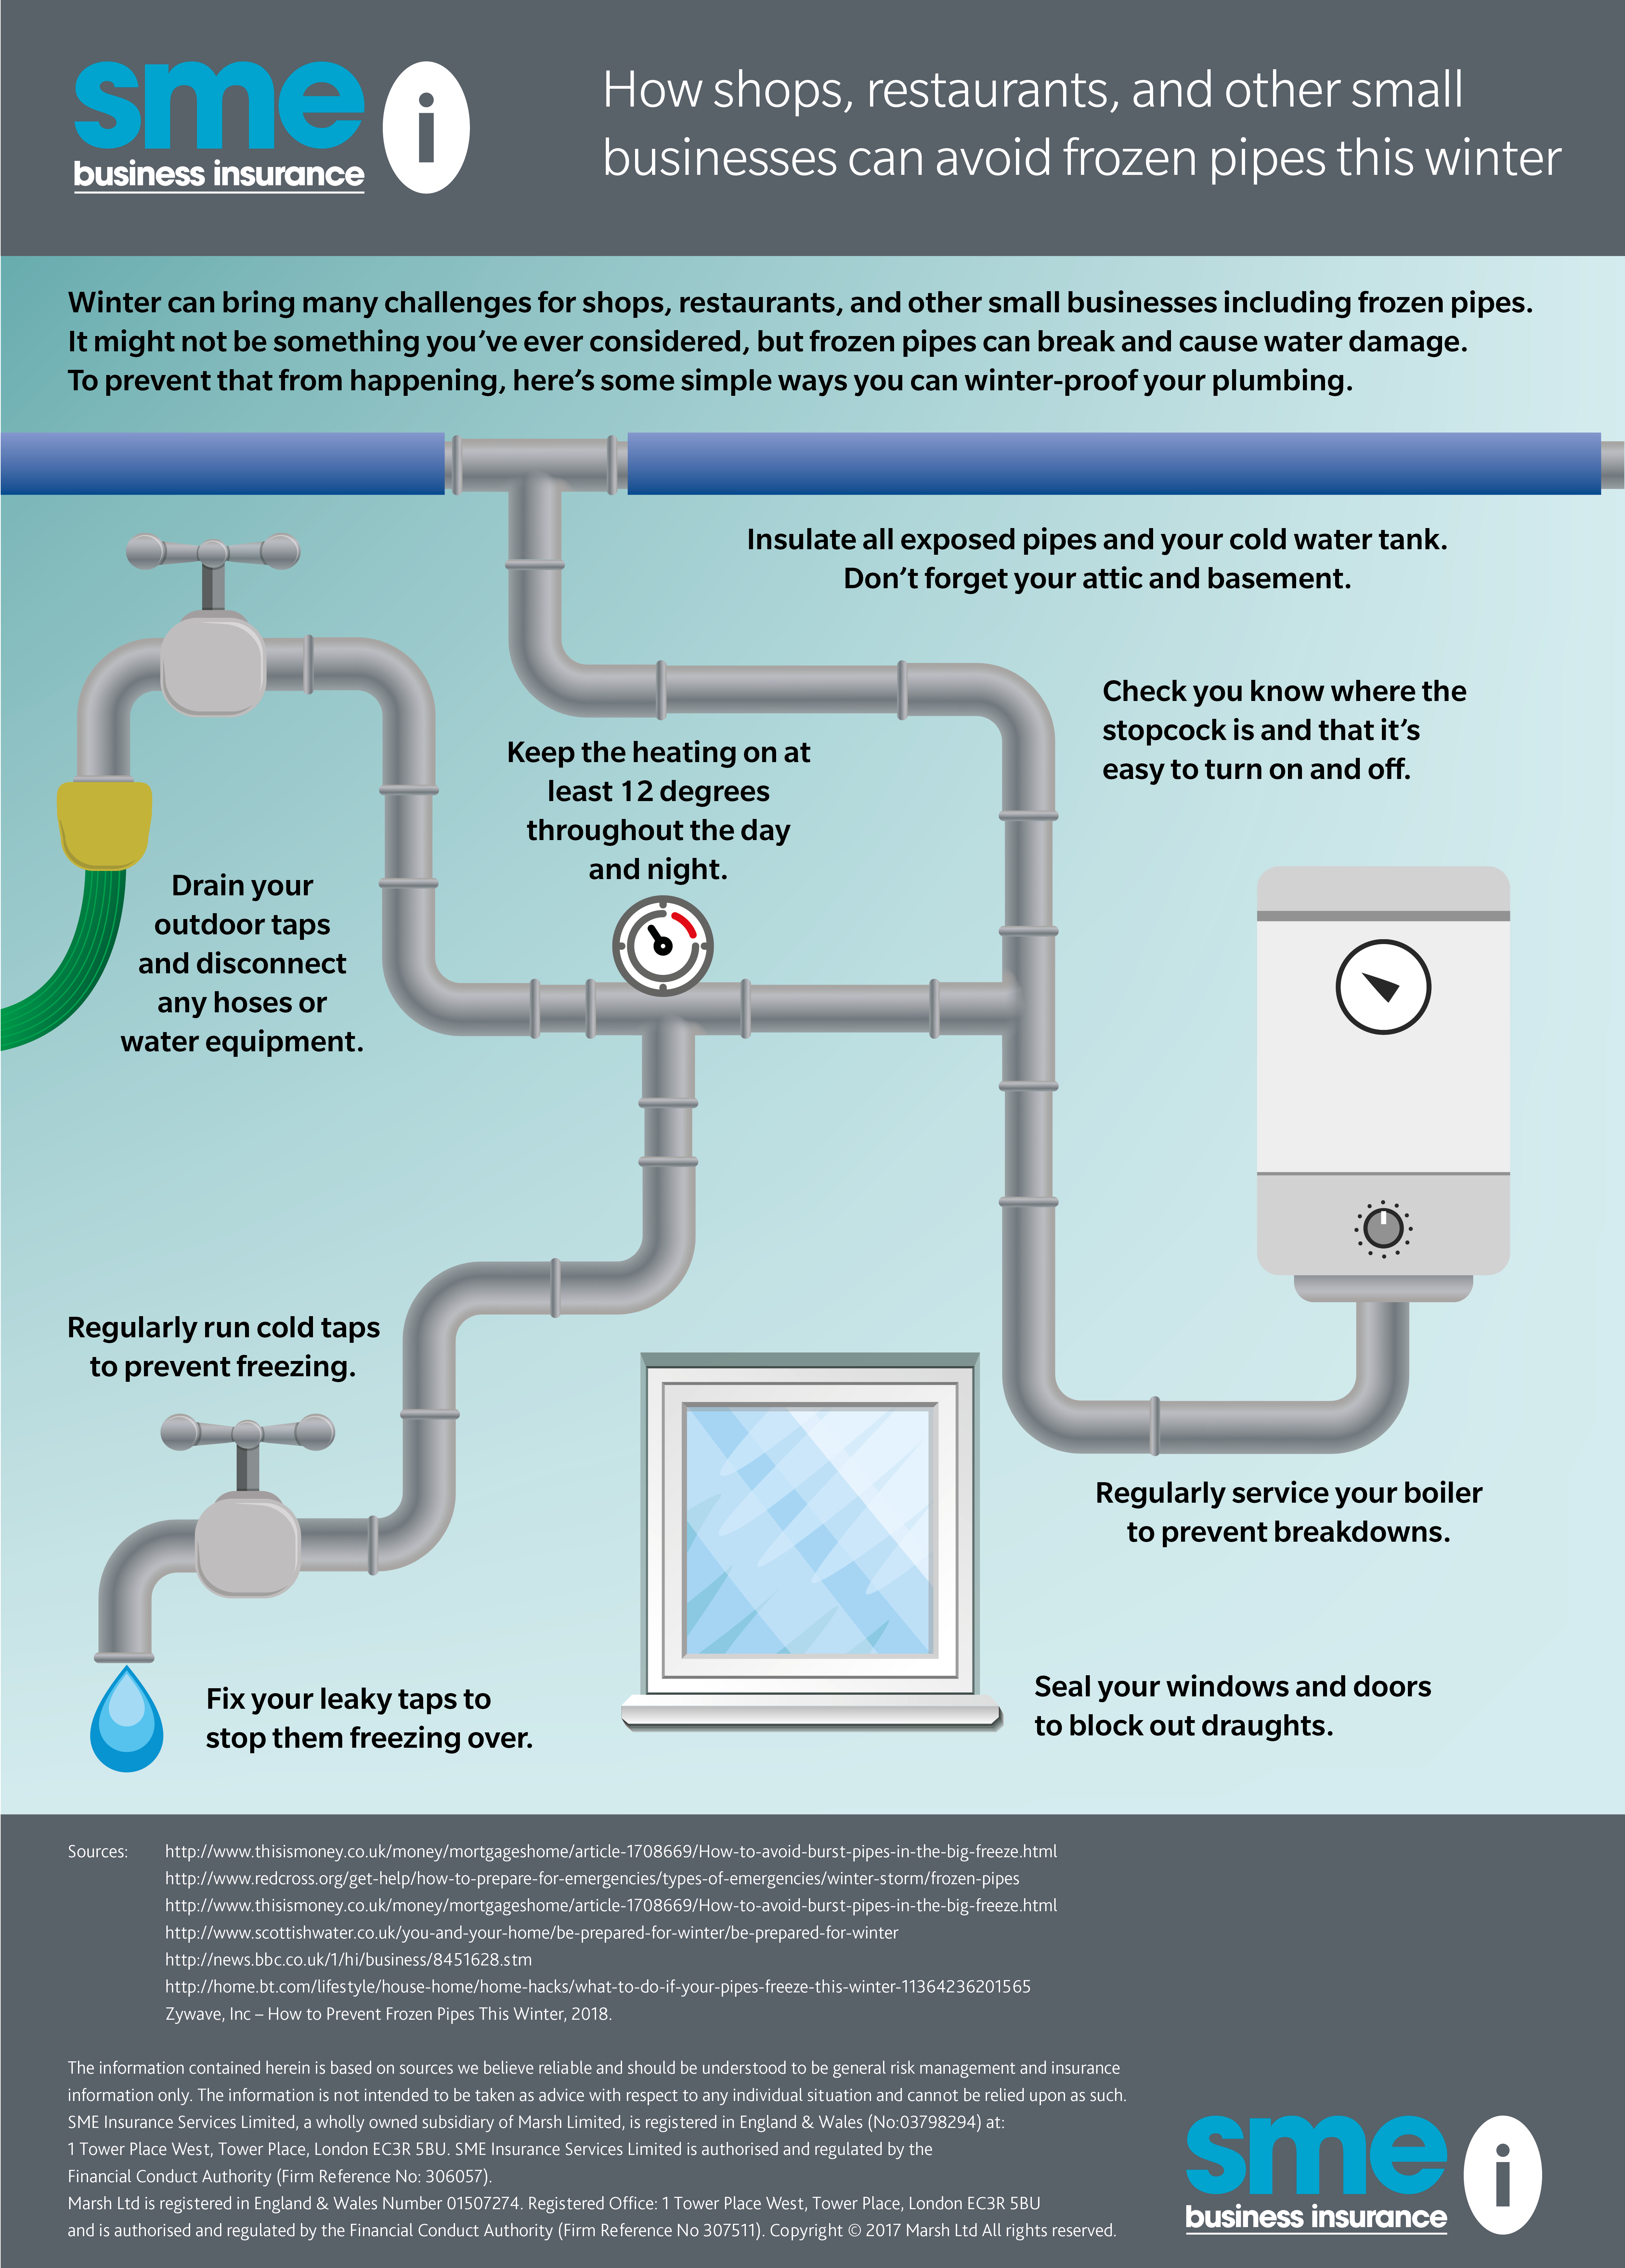 How to avoid frozen pipes in a shop? | SMEi